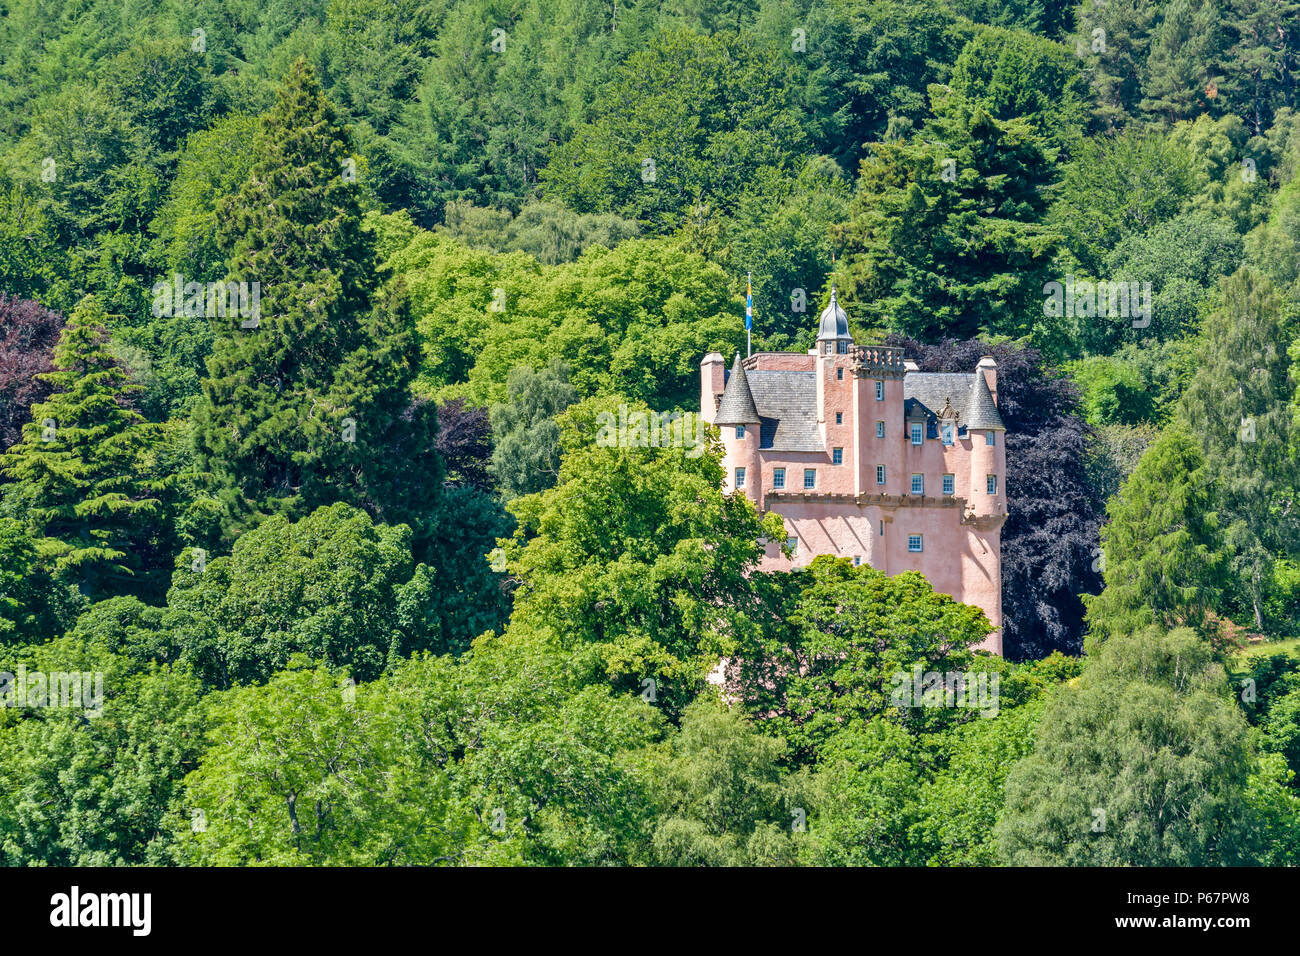 CRAIGIEVAR CASTLE ABERDEENSHIRE SCOTLAND PINK TOWER SURROUNDED BY A VARIETY OF TREES AND LEAVES IN SUMMER - Stock Image